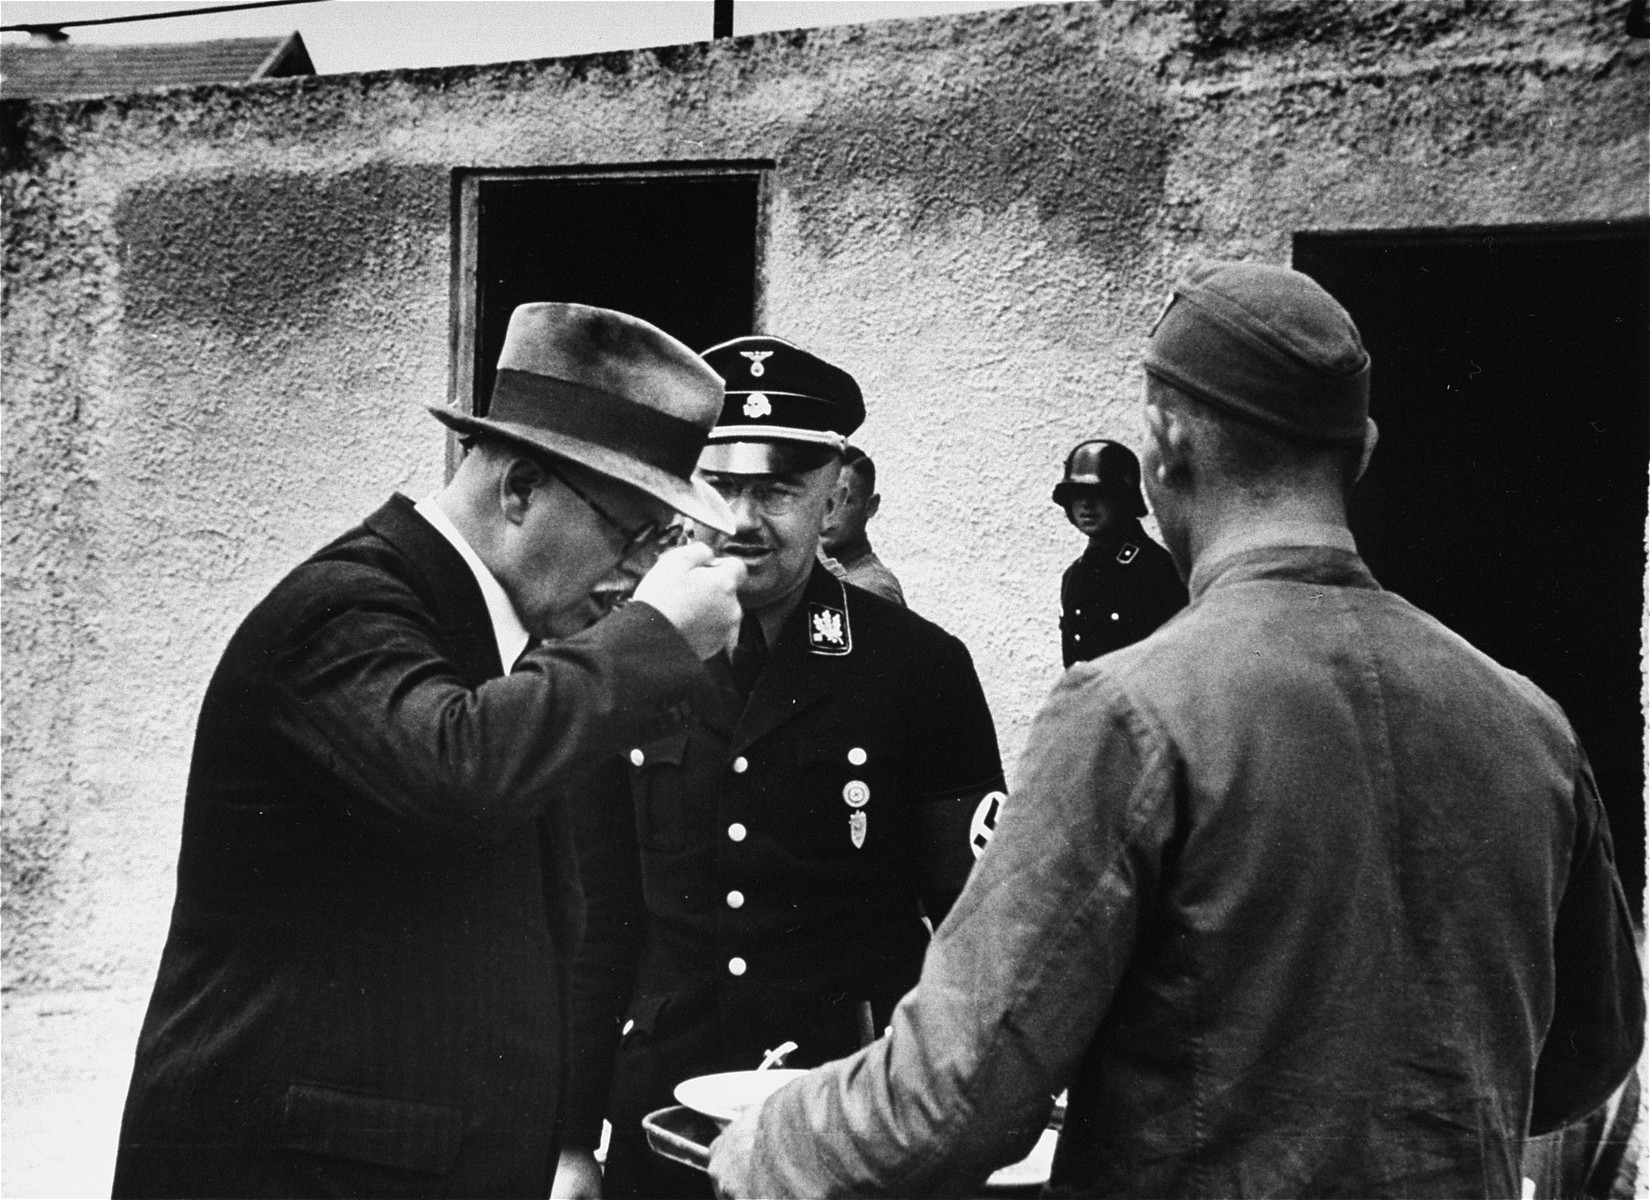 Heinrich Himmler watches an unidentified man, probably  Franz Xaver Schwarz,tasting food.  This image was taken from an album of SS photographs.